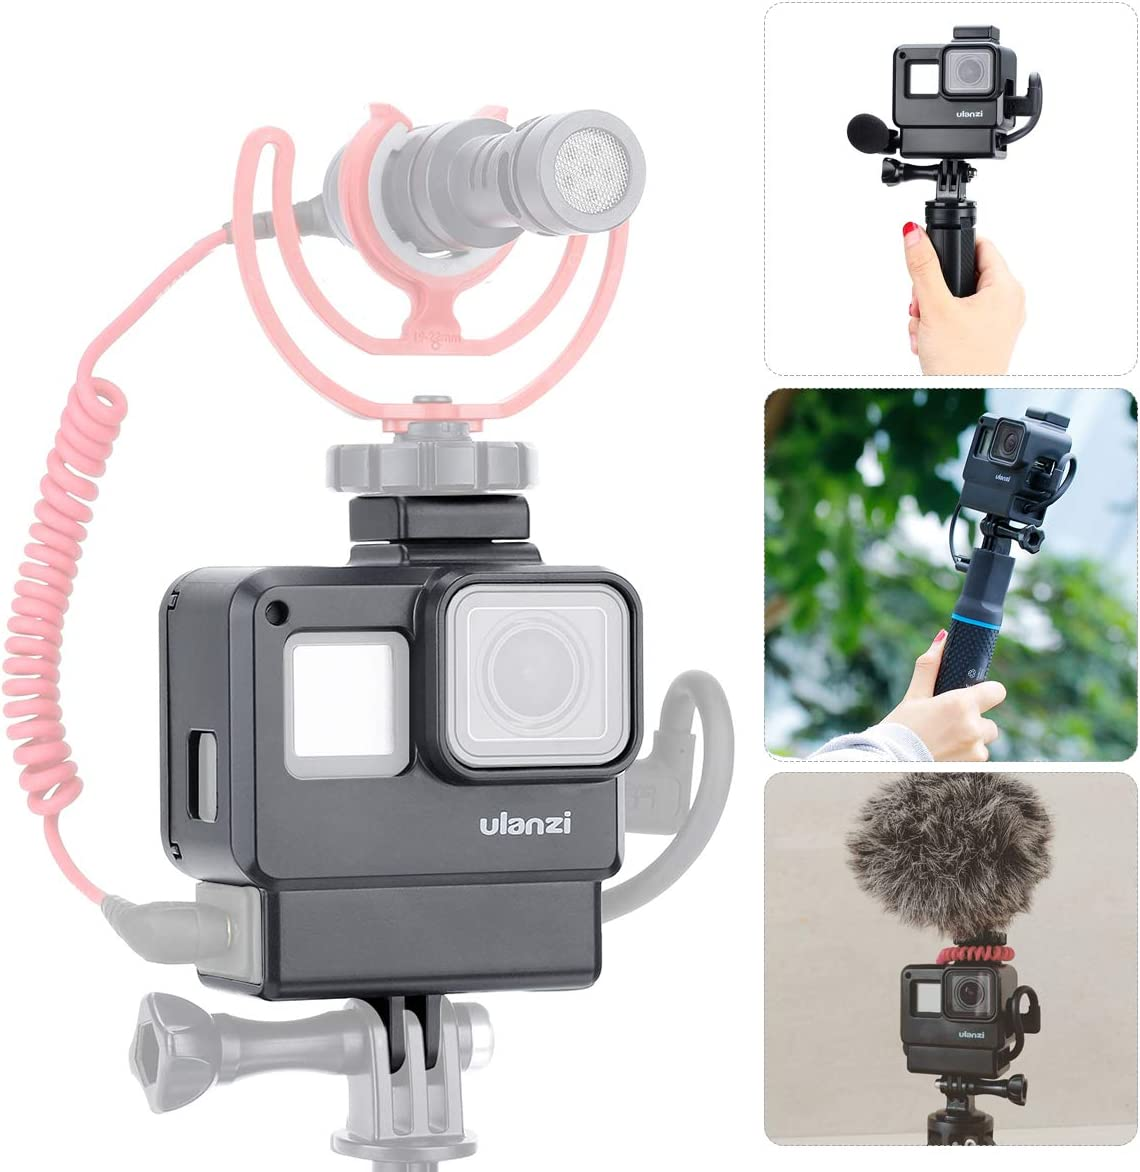 ULANZI V2 Multifunctional Vlogging Case w Cold Shoe Mount for Microphone LED Video Light,Wire Connectable Frame Housing Shell Mount Cage for Gopro Hero 7 6 5 Action Camera Video Vlog Creator Setup